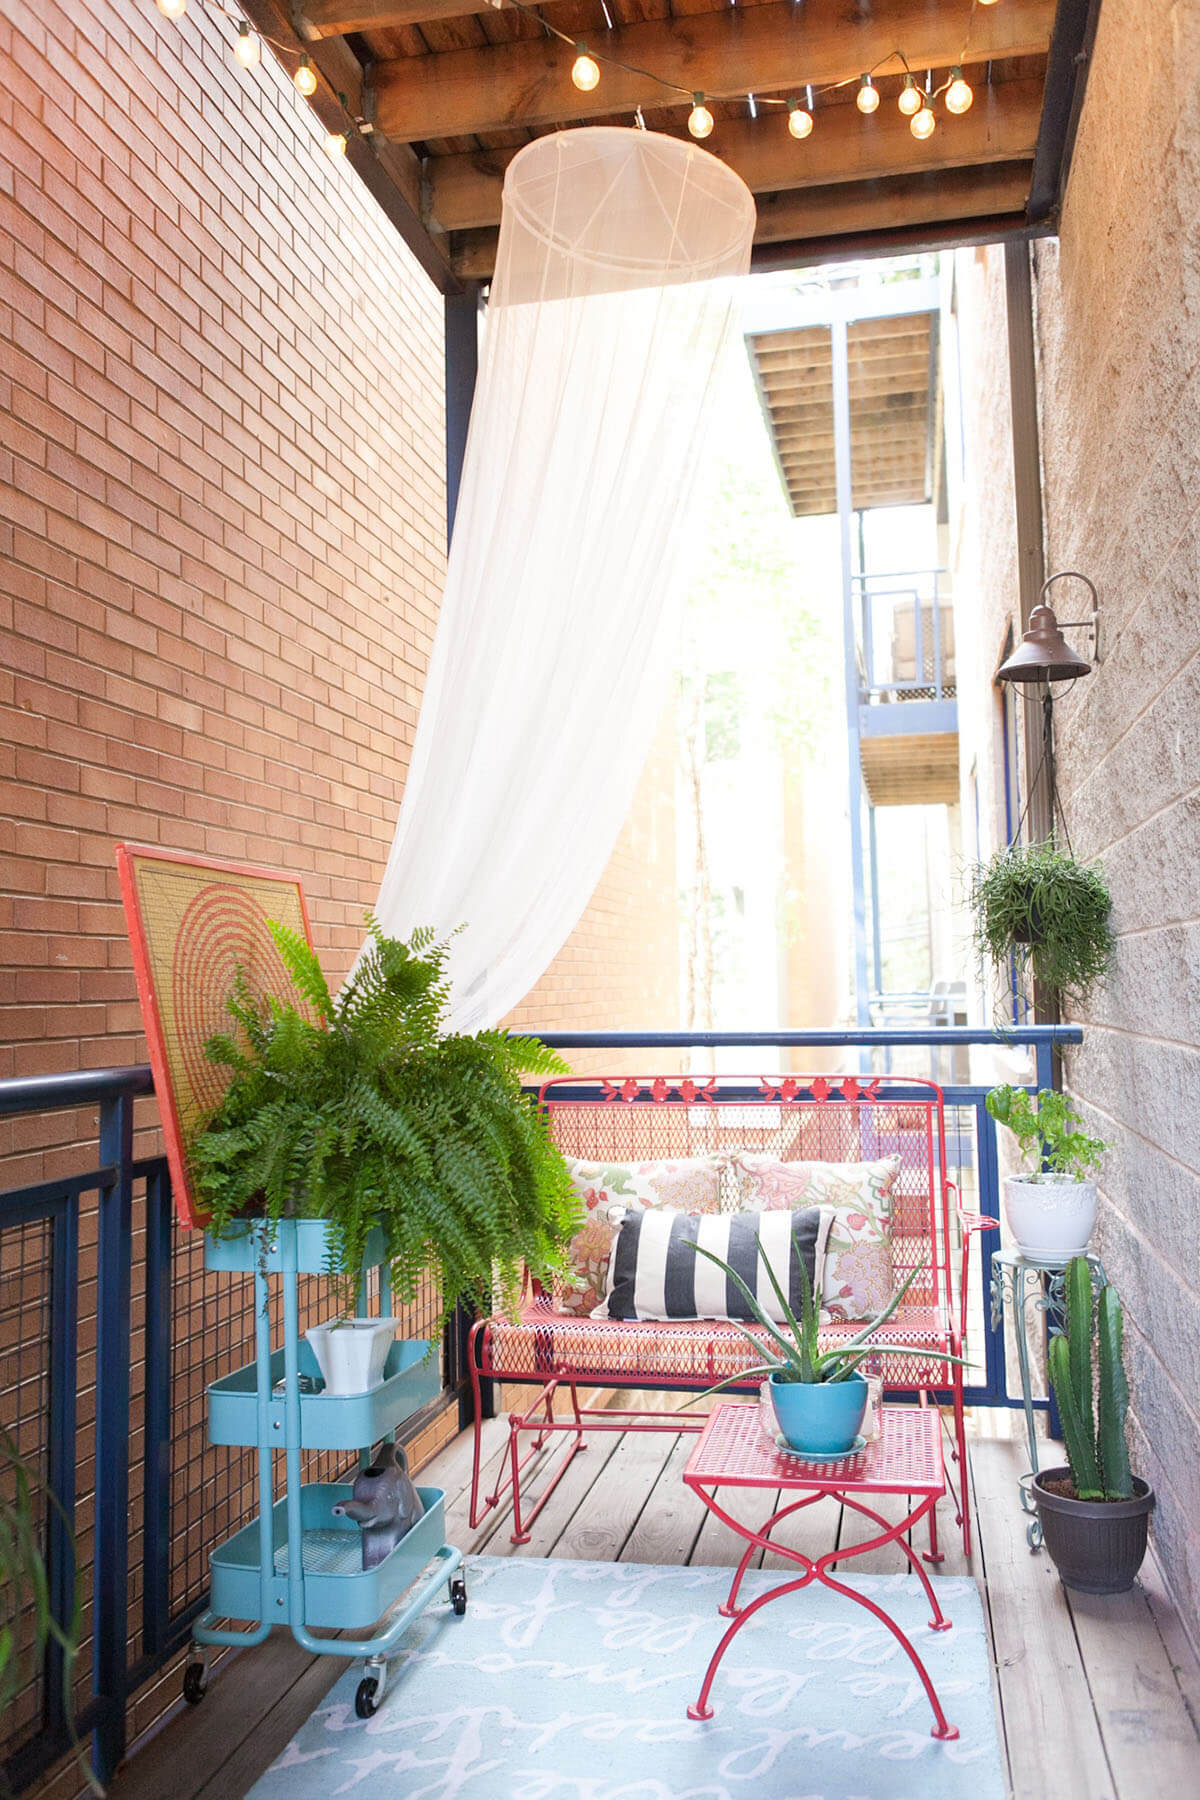 Mosquito Netting as a Fun and Practical Option